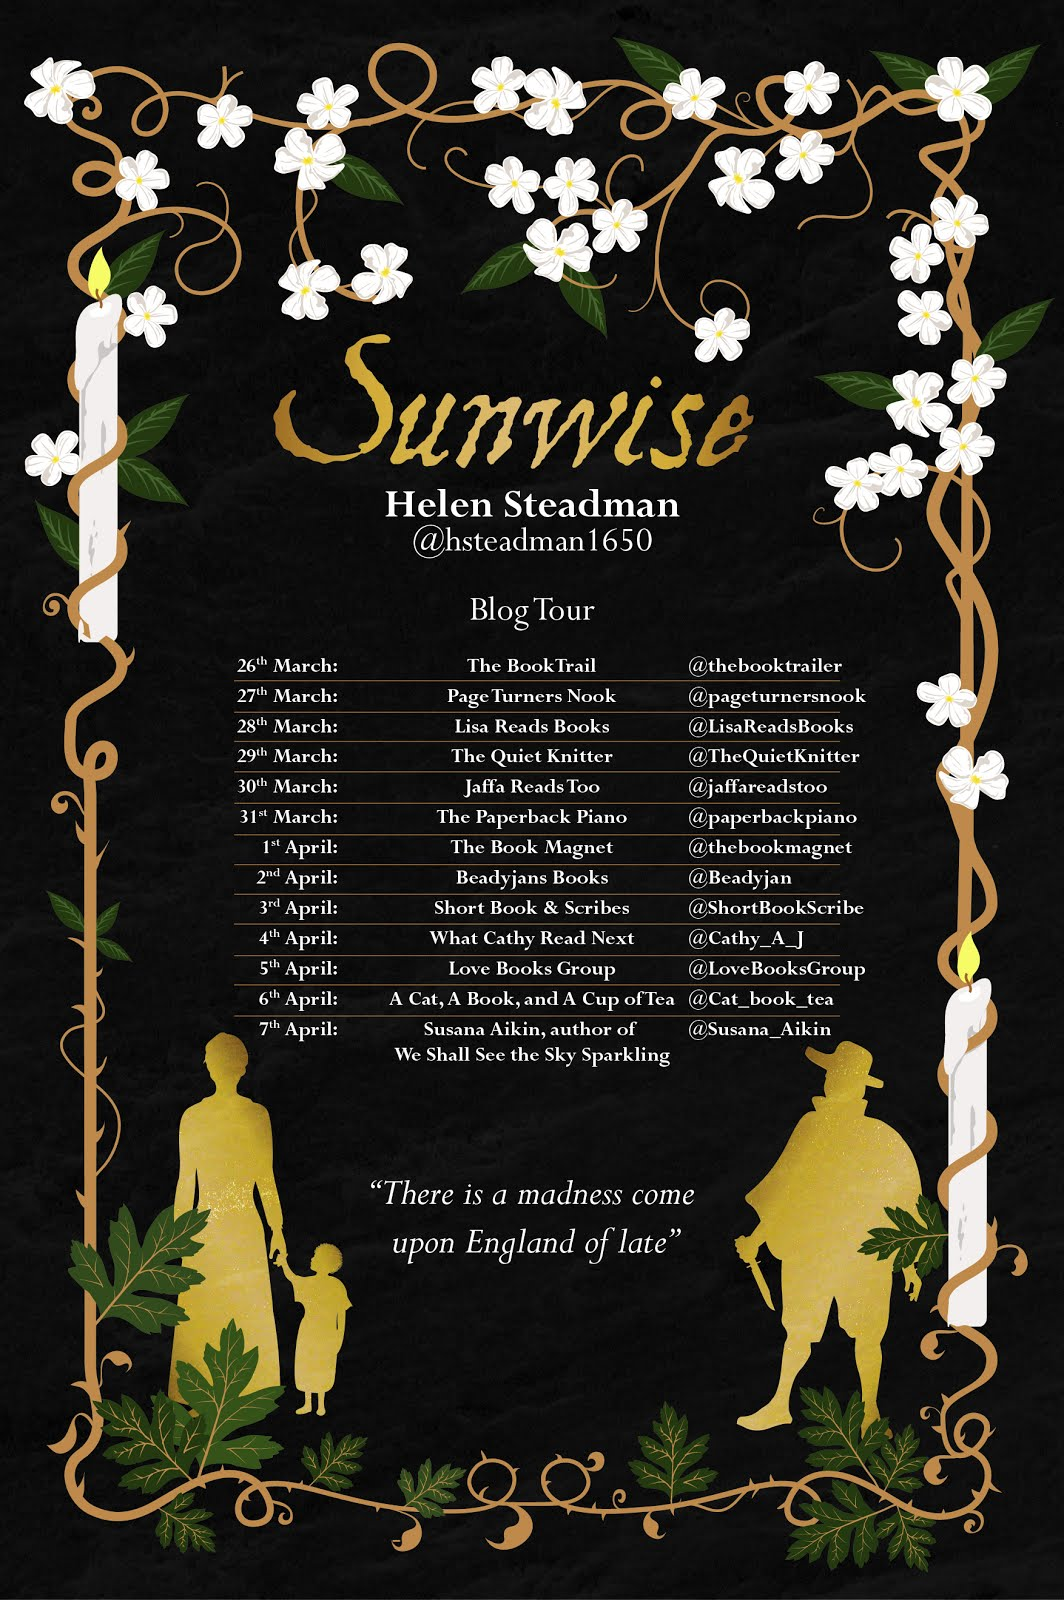 Sunwise Blog Tour